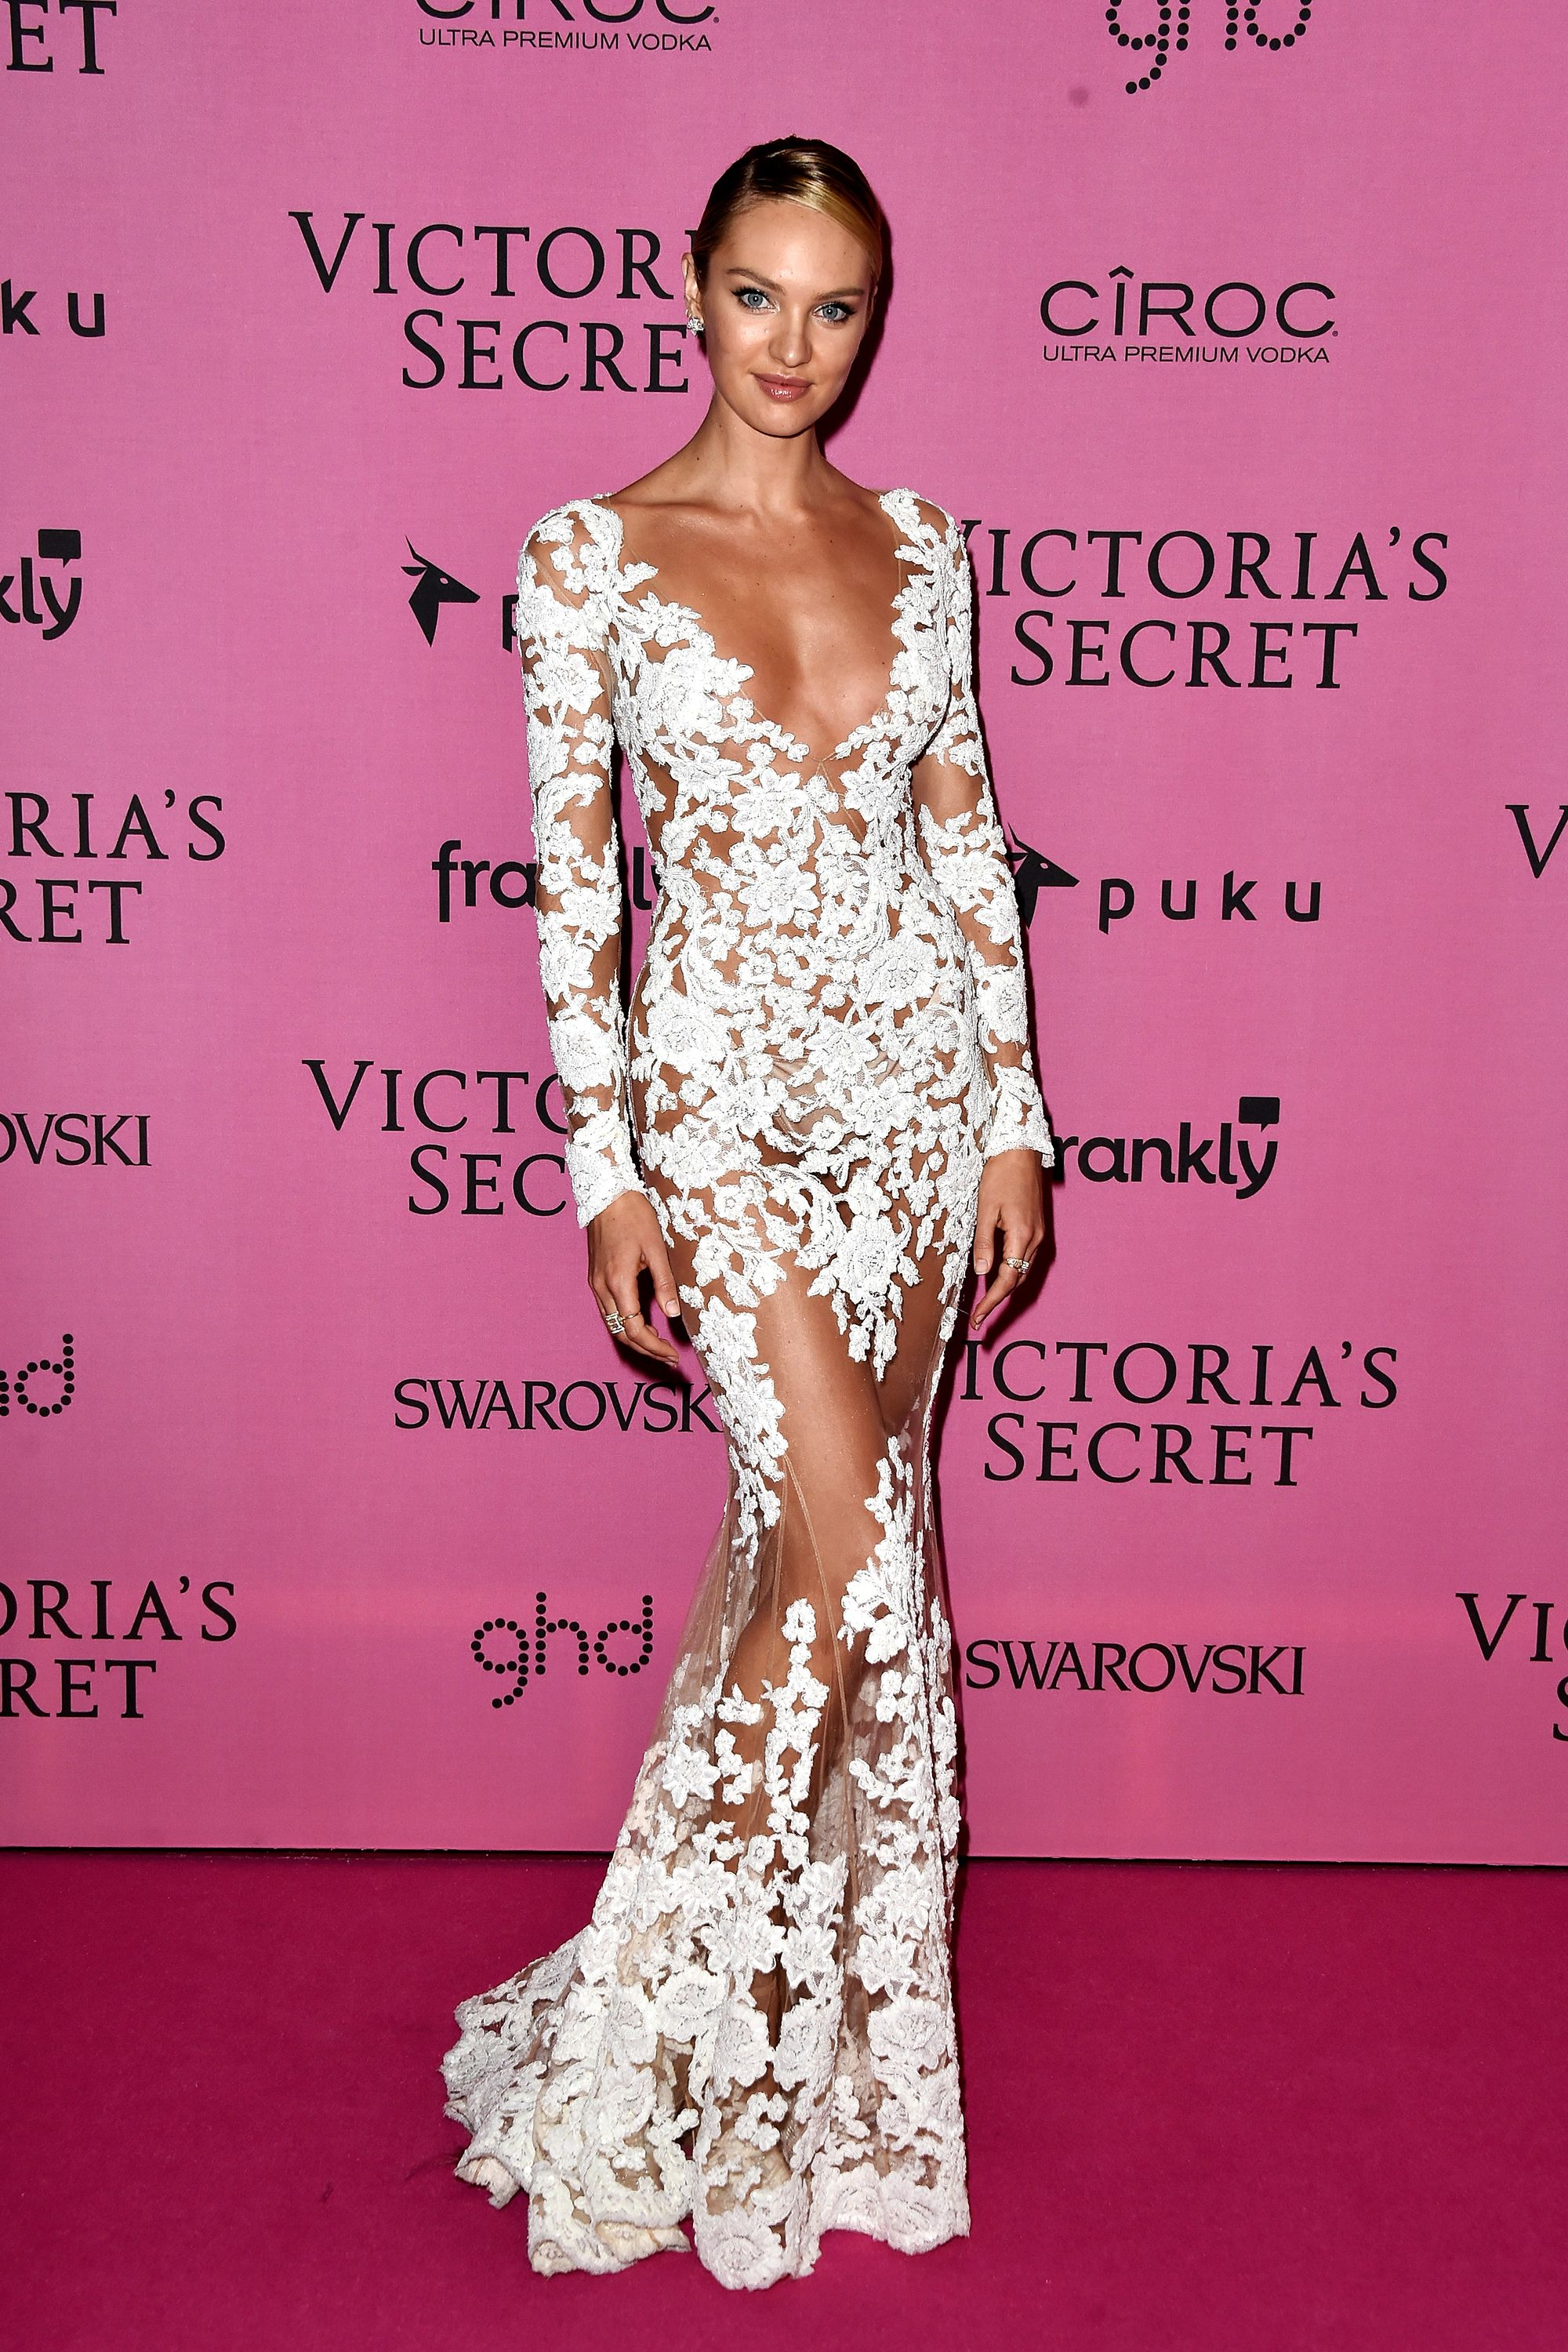 Candice Swanepoel Sexiest Red Carpet Looks - Victoria's Secret Angel Candice Swanepoel Style